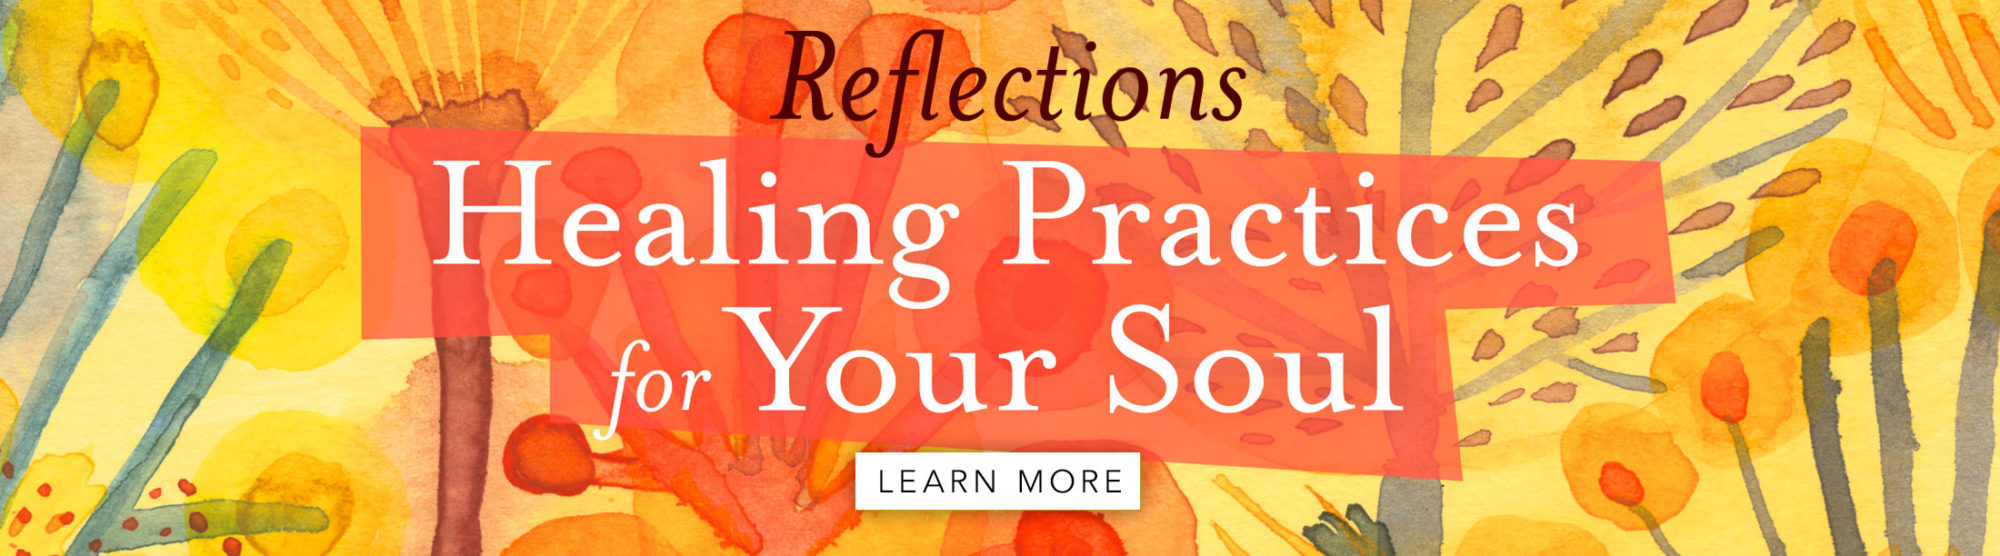 Healing Practices for Your Soul